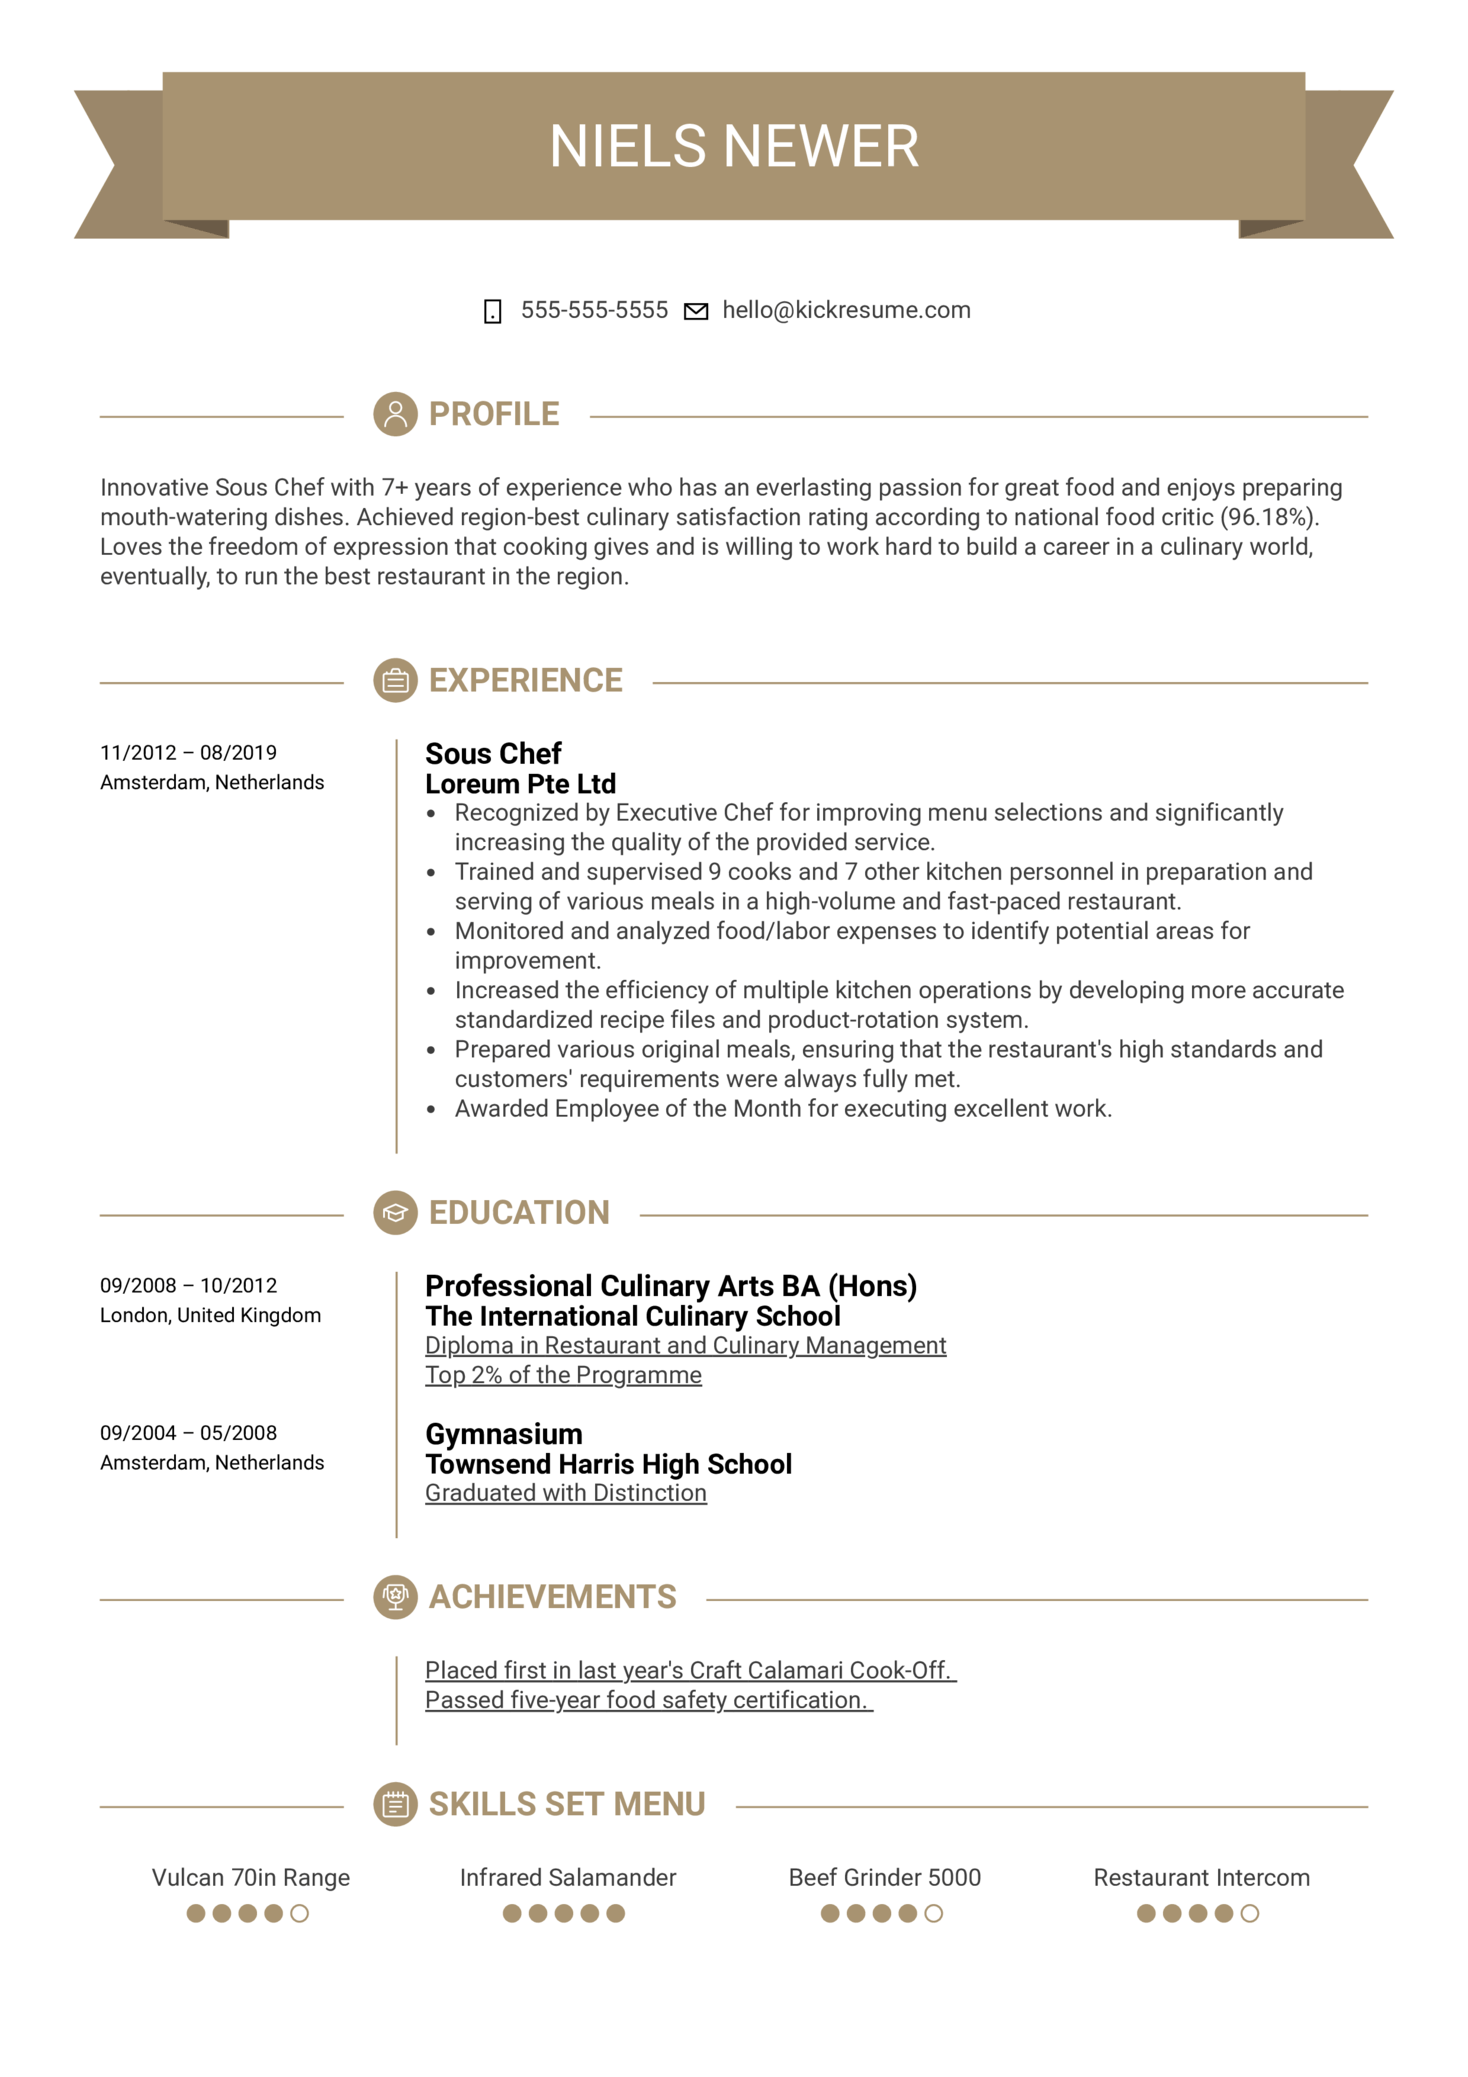 Sous Chef Resume Template (parte 1)